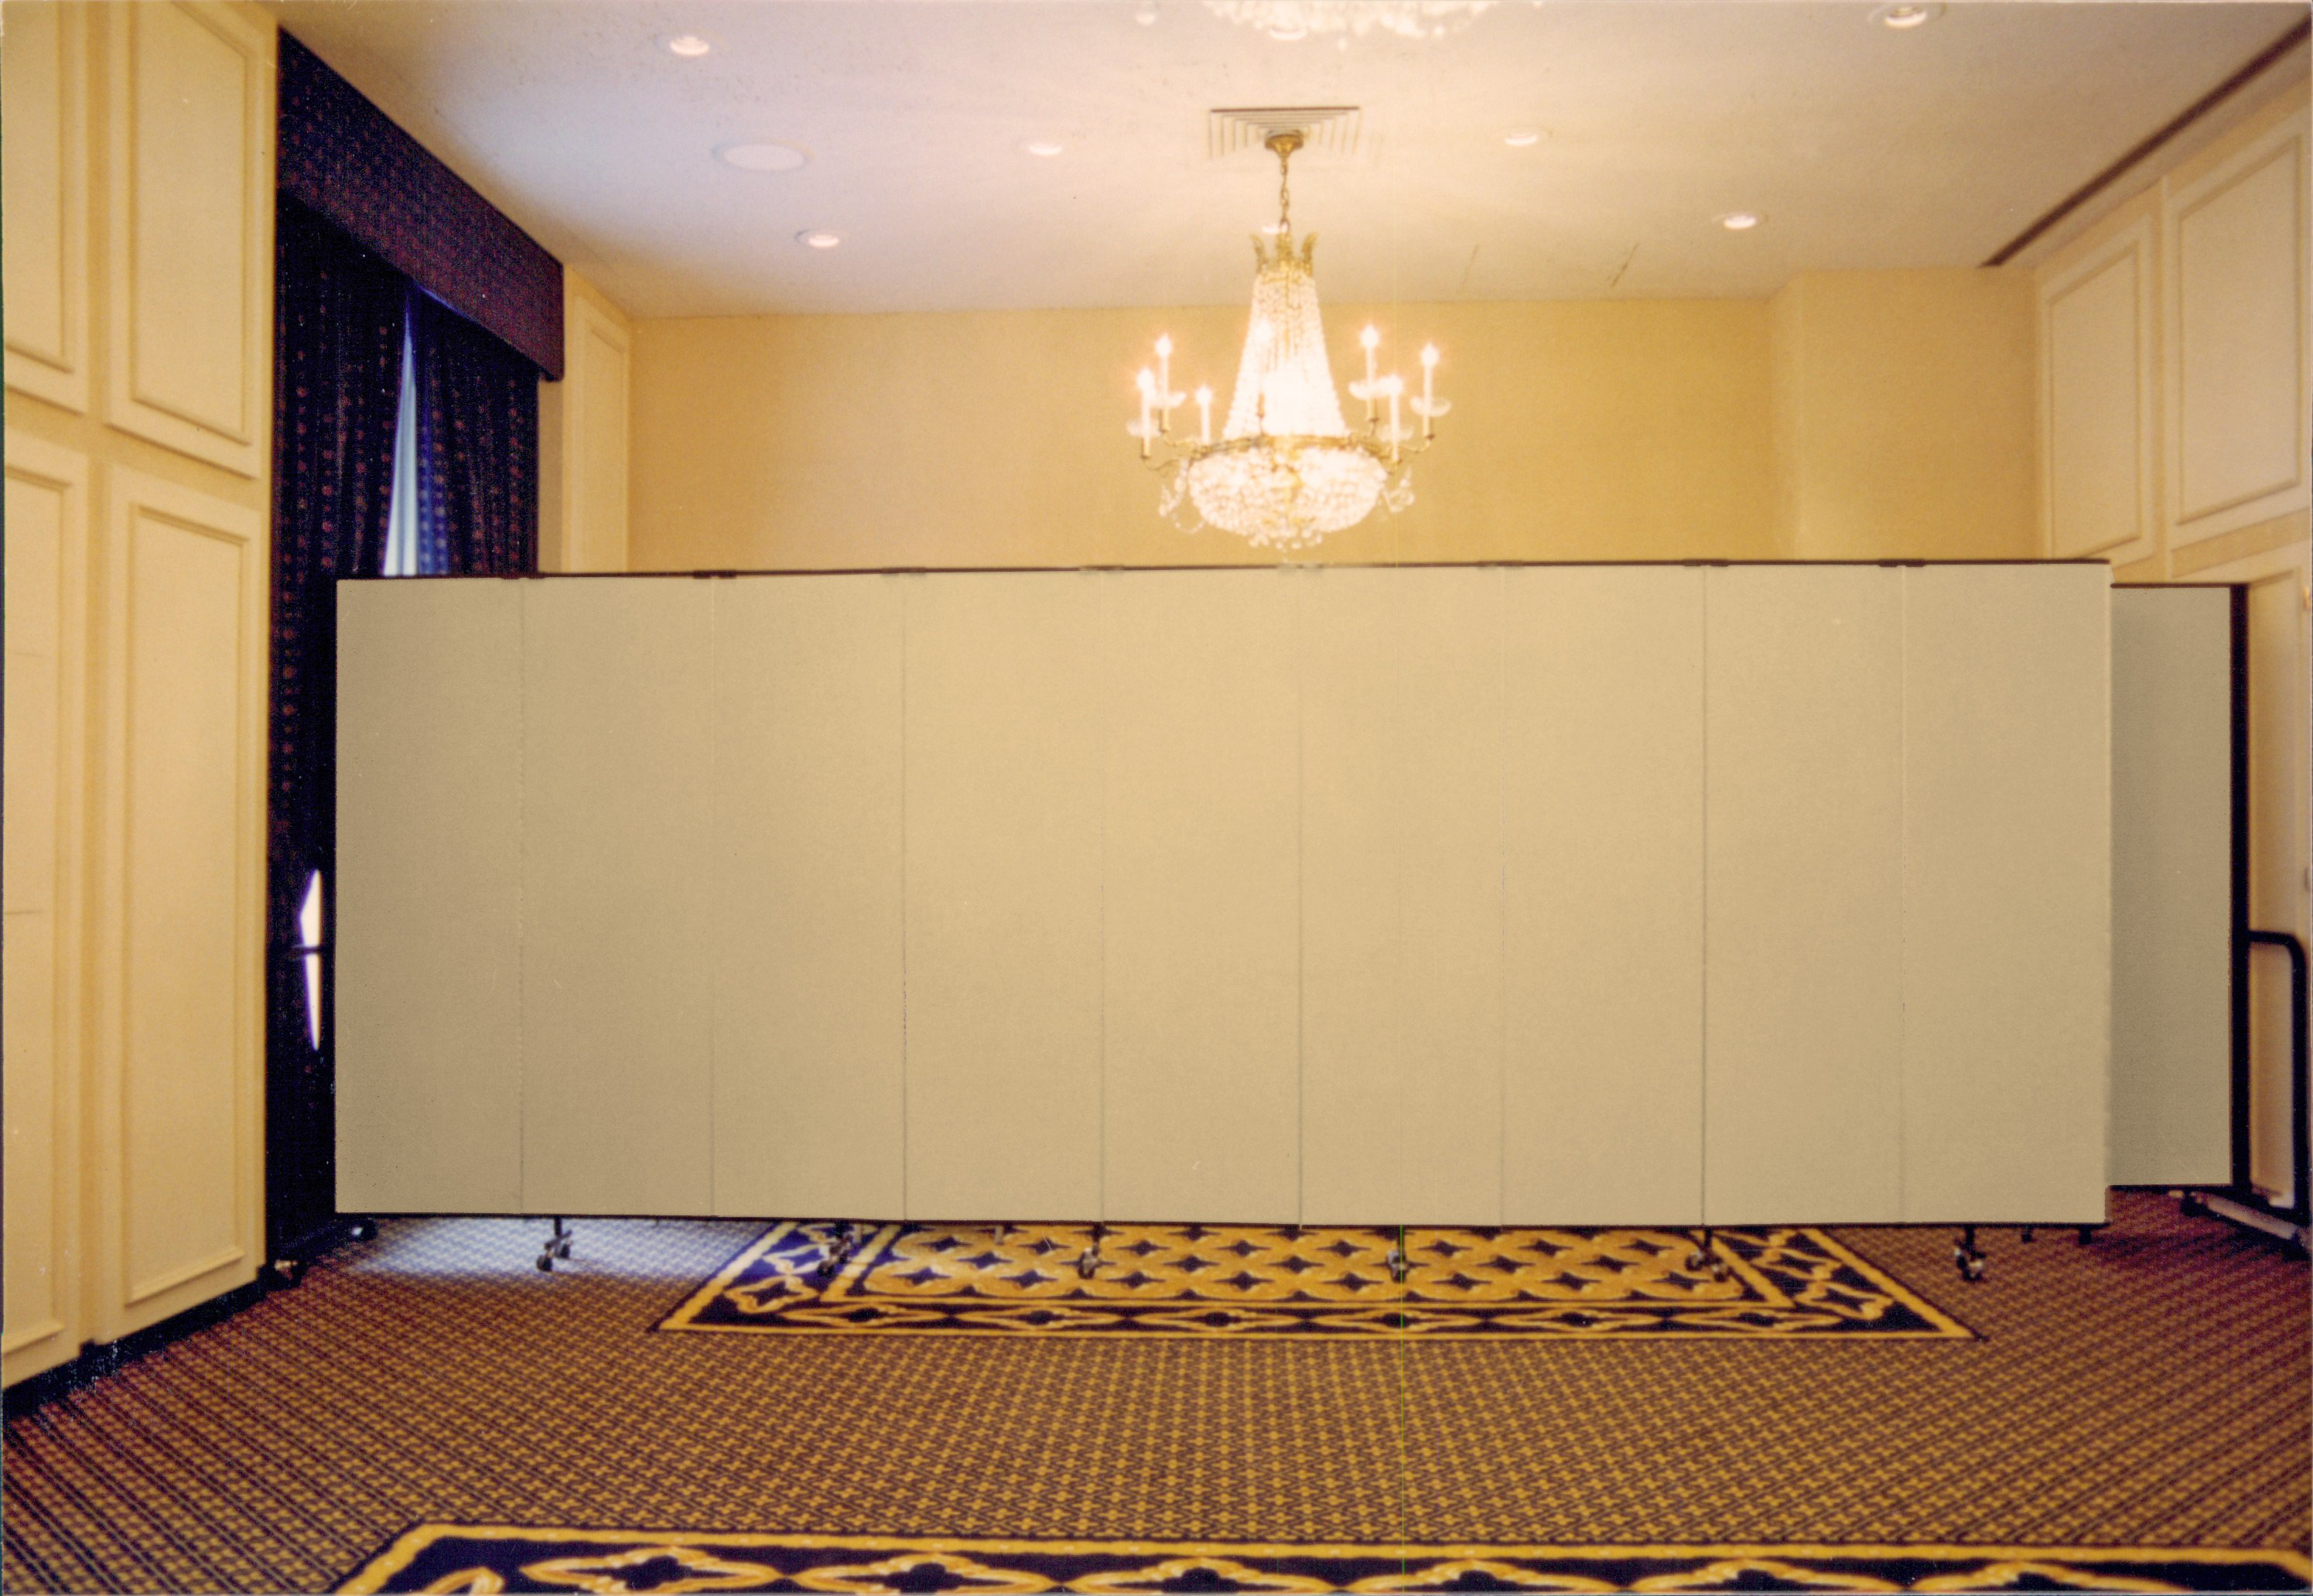 A room divider is opened across the back of a ballroom to hide unused items